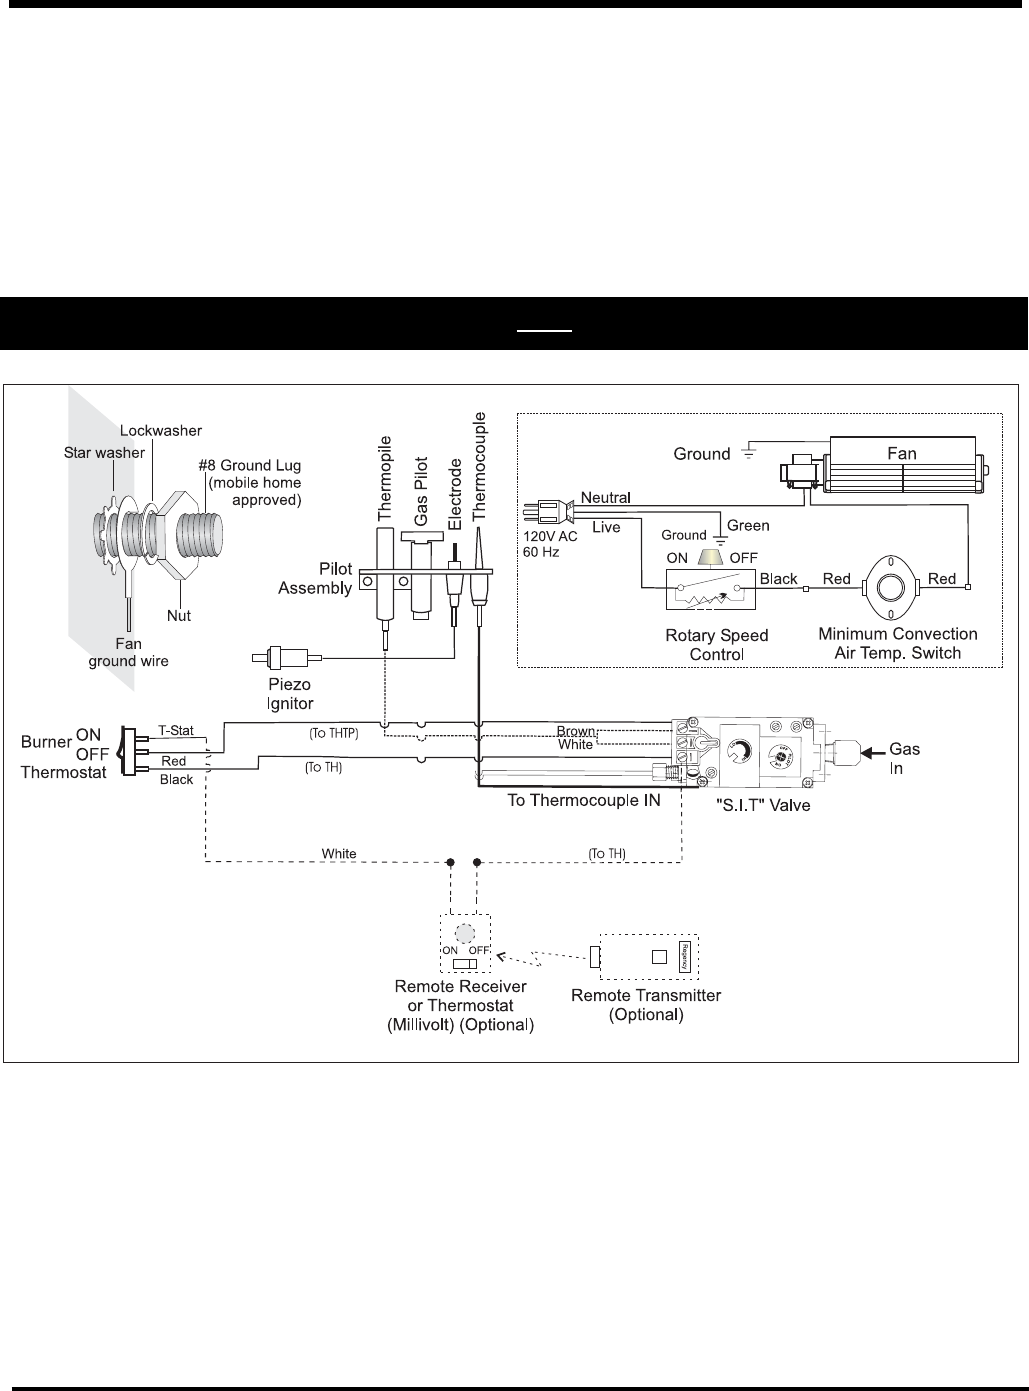 Regency P33-LP4 WIRING DIAGRAMS | Wiring Diagram For A Gas Fireplace Blower |  | manualsdump.com